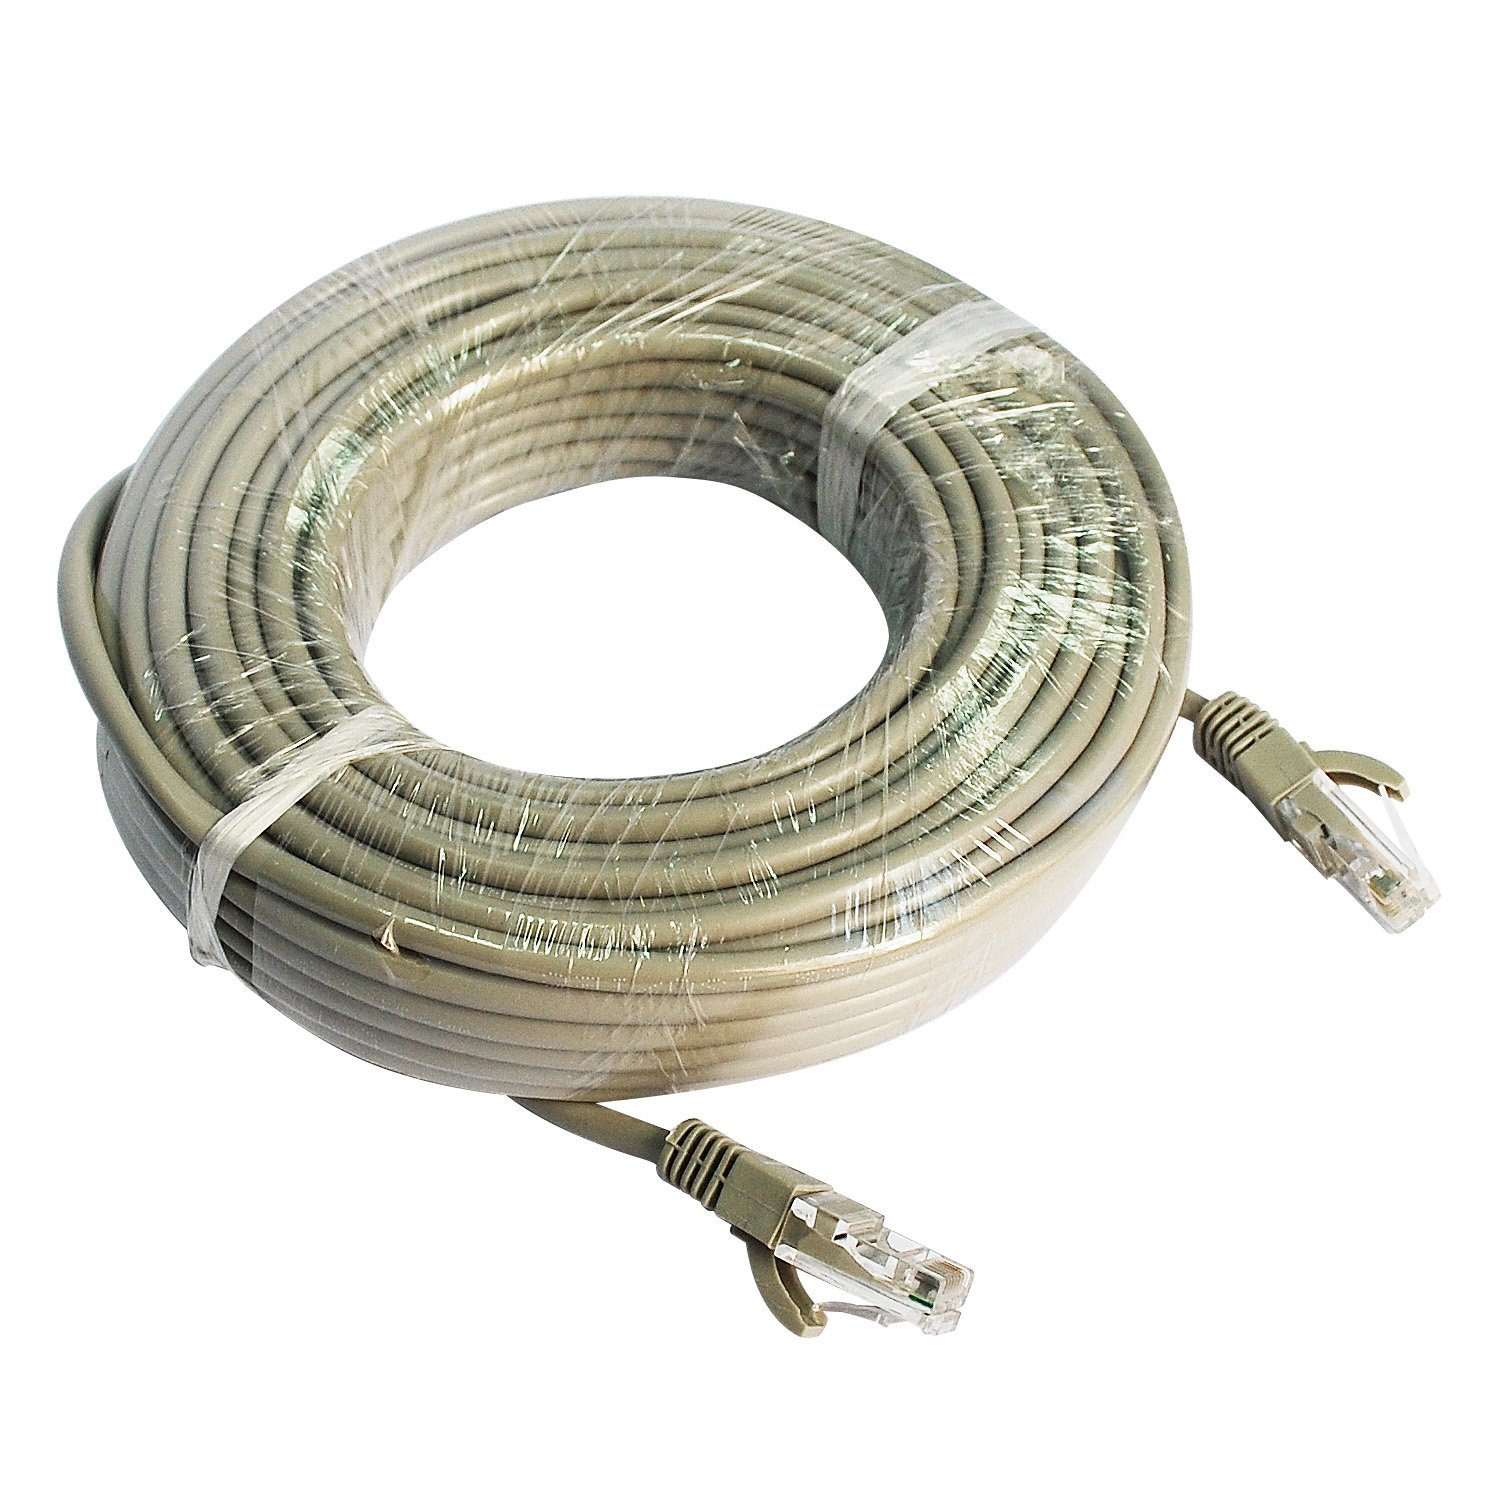 ANNKE 18 meter Network Cable Cat5e RJ45 Ethernet LAN Network Cable Suitable for NVR Recorder Secuity Camera System